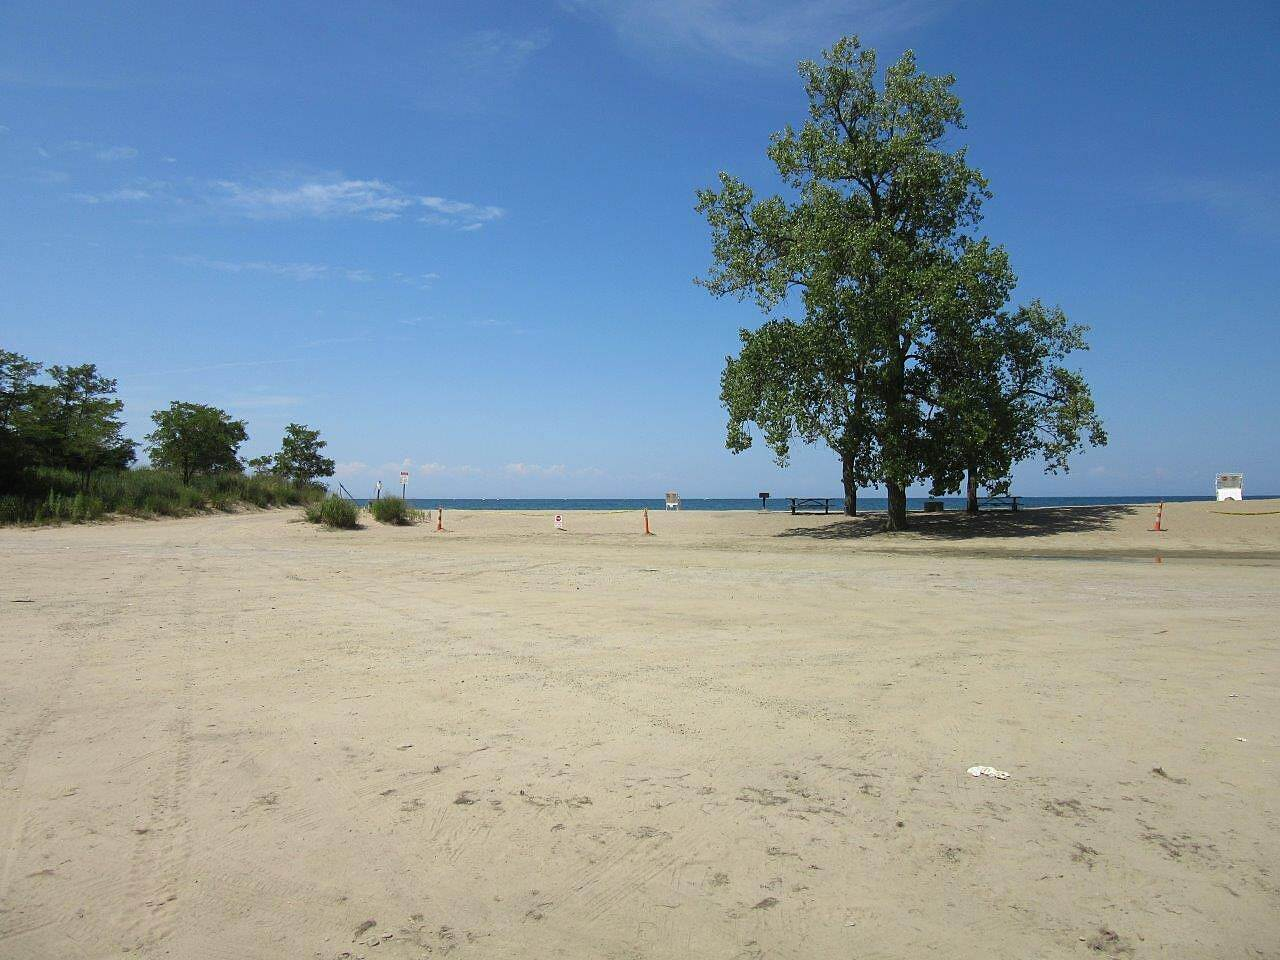 Karl Boyes Multi-purpose Trail Lake Erie Beach One of the several beaches along Lake Erie in Presque Isle state park along the trail